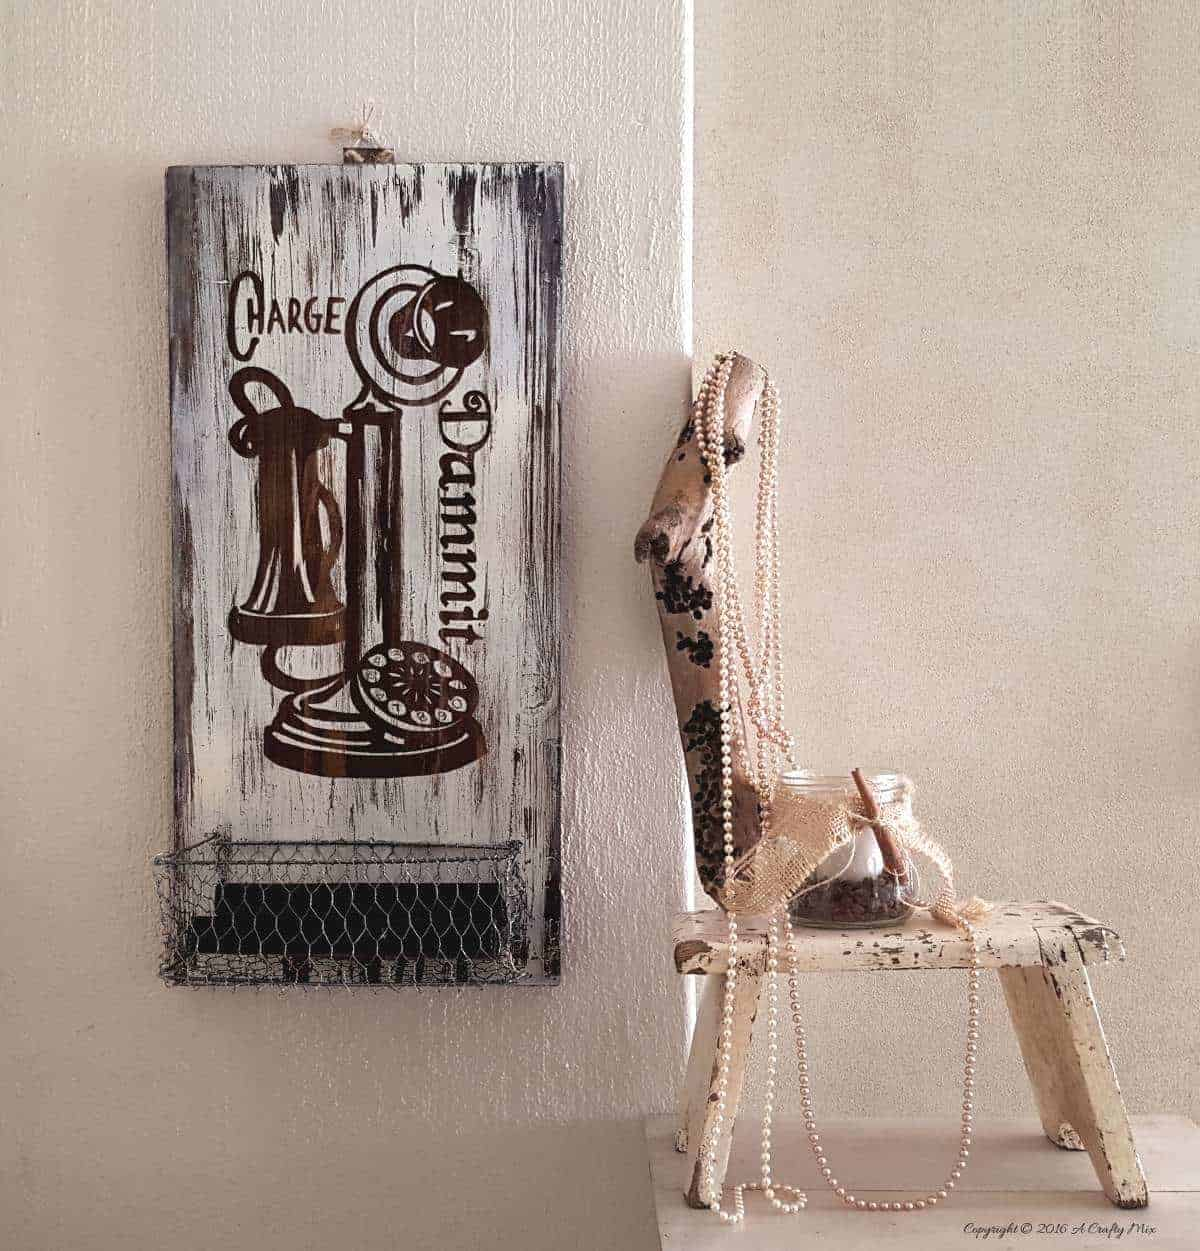 Old cupboard door recycled as a charging station - full tutorial on the blog